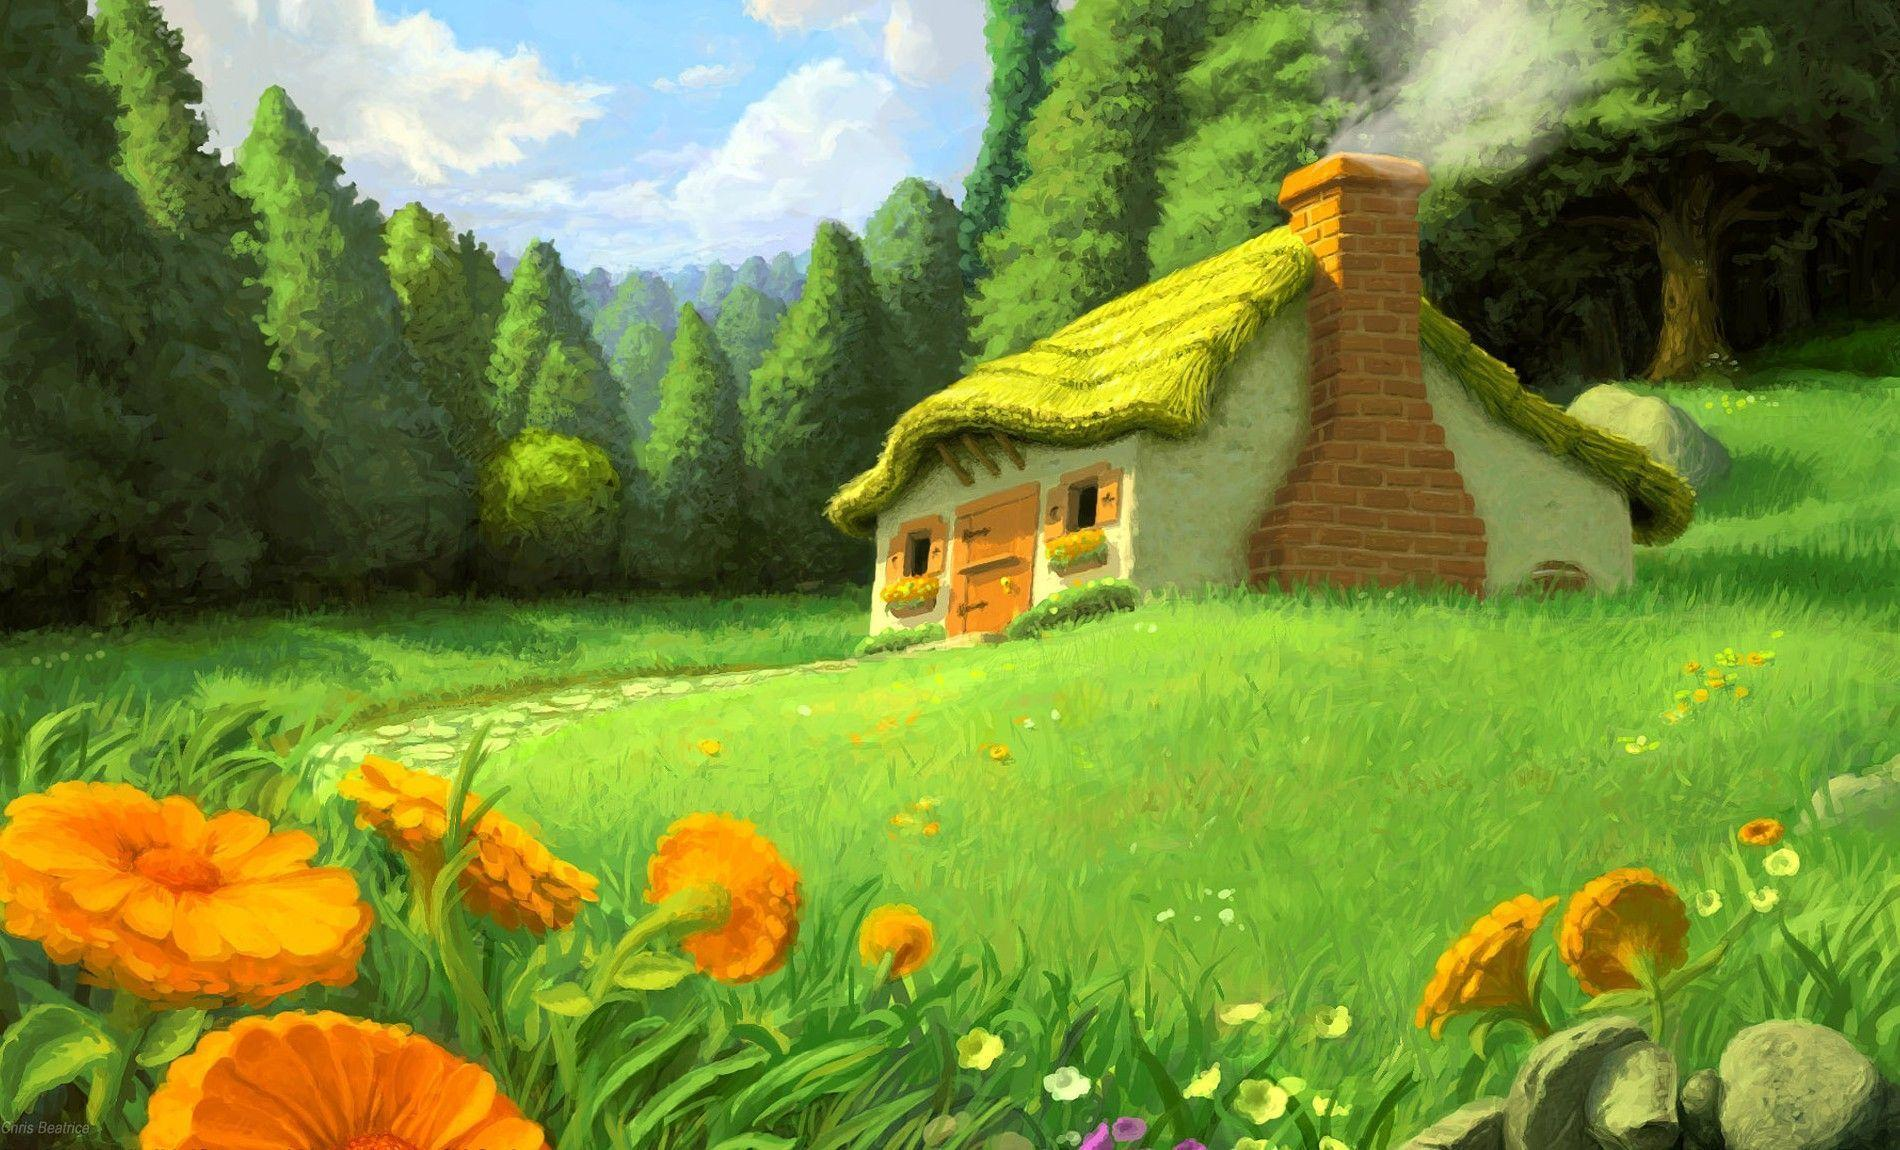 Nature Animated Images 1